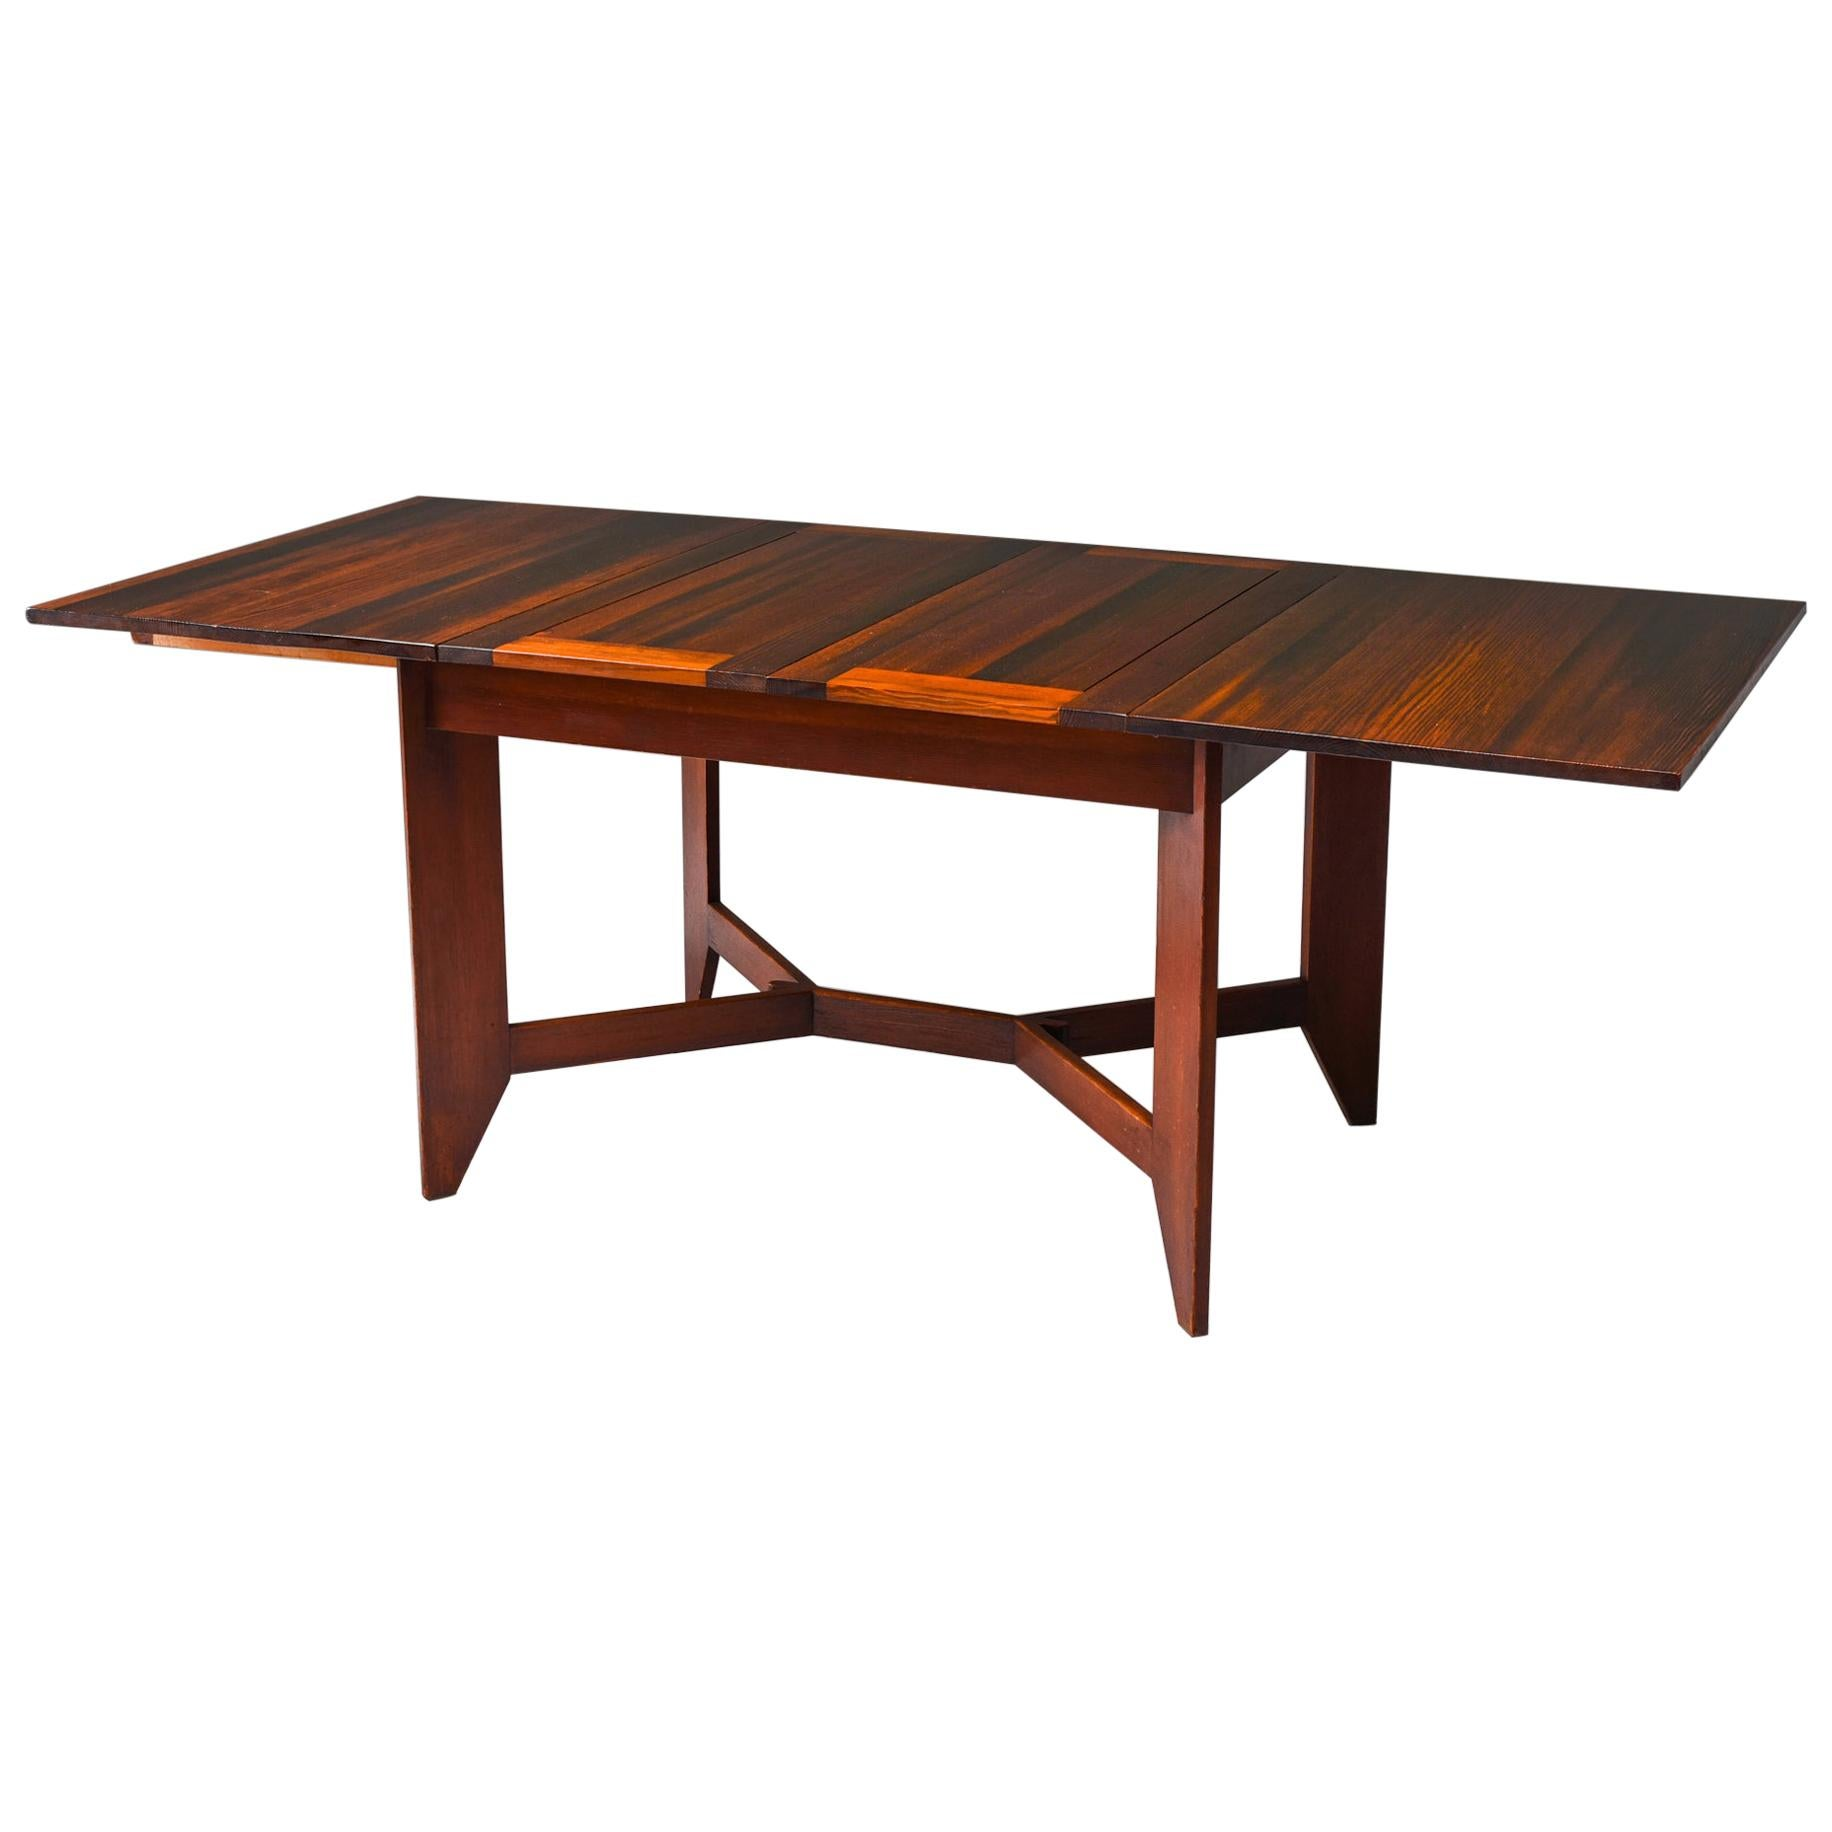 Modernist Dining Table by H. Wouda